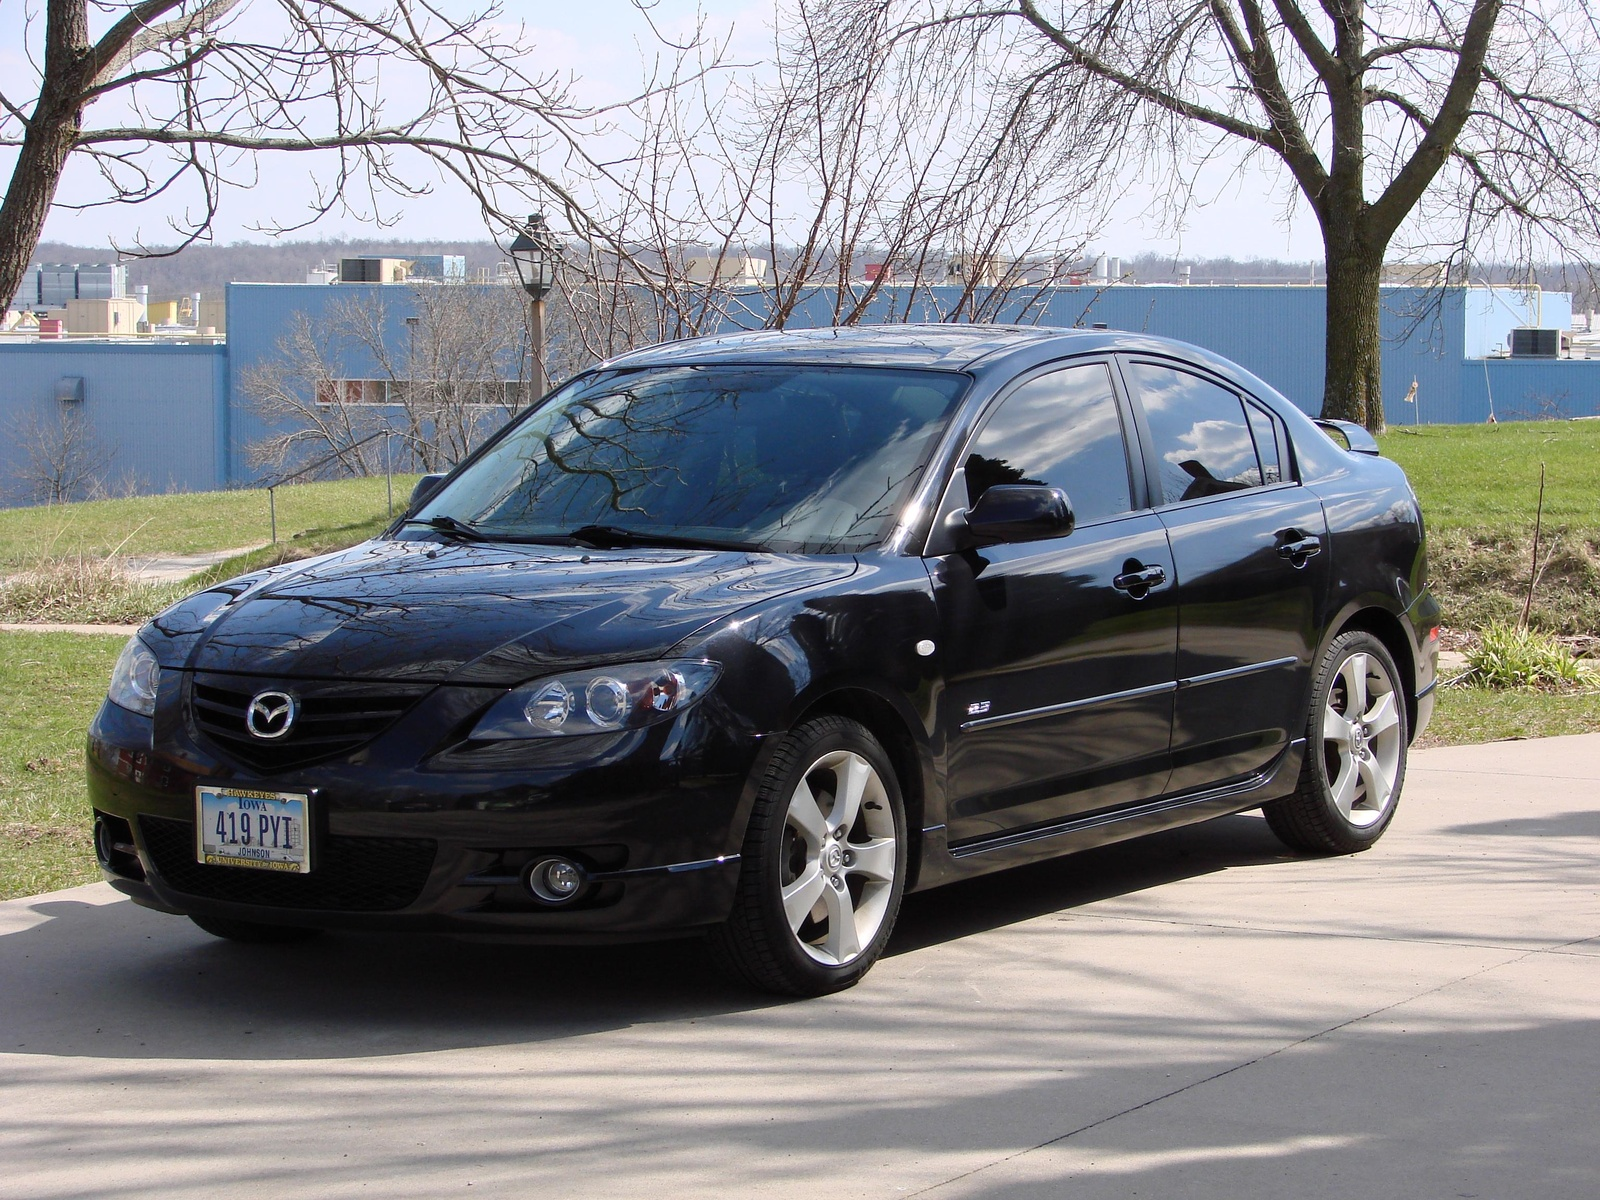 2005 mazda mazda3 image 11. Black Bedroom Furniture Sets. Home Design Ideas